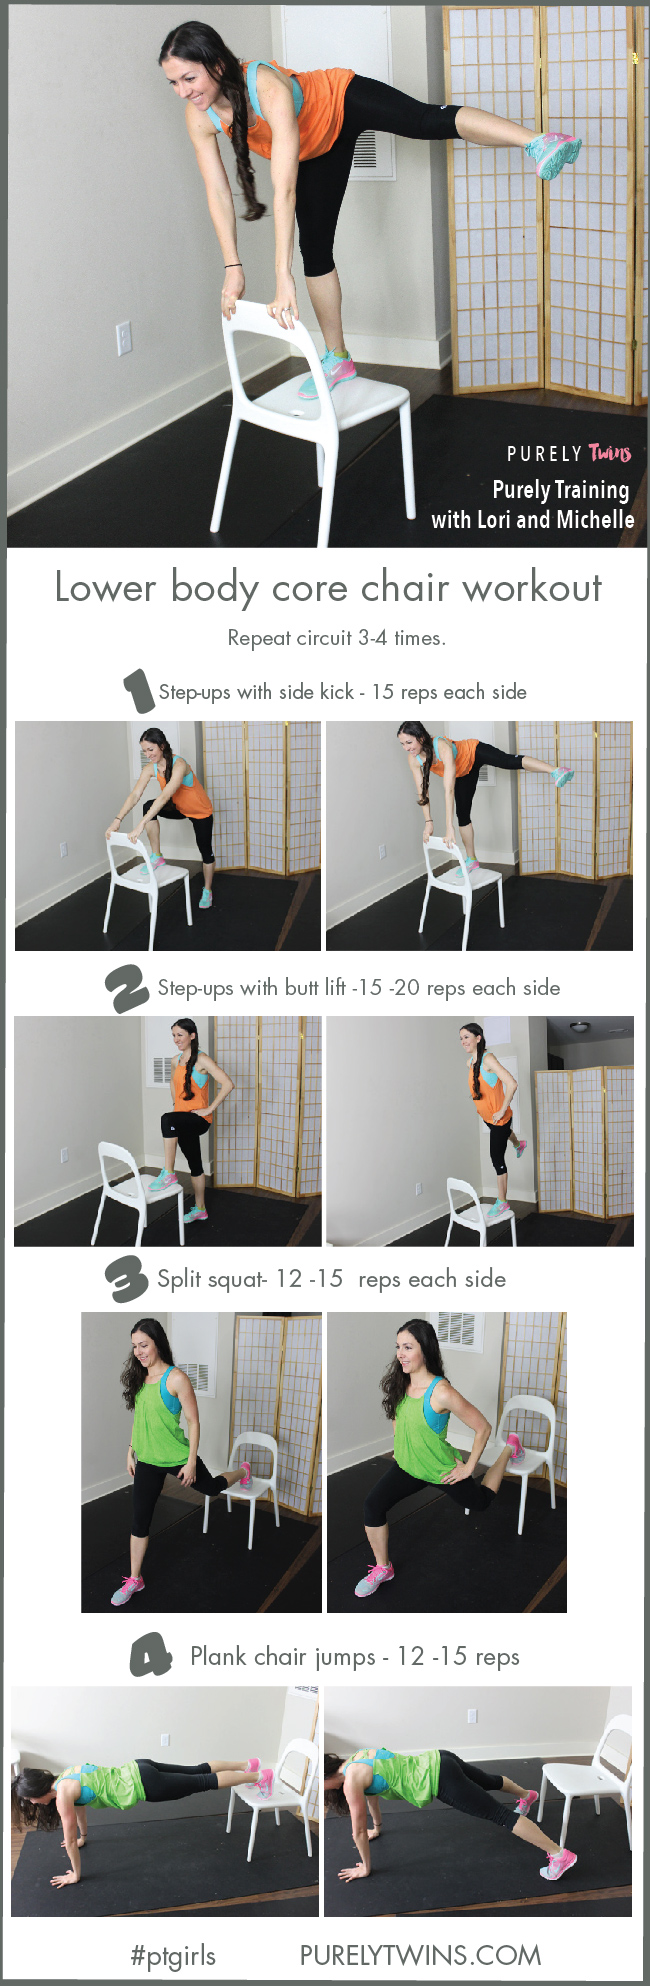 Chair workout for better buns, abs and thighs. This leg and core workout can be done anywhere as all you need is a chair. Get ready ladies to tone your legs using a chair! Let us know which move is your favorite from this exercise routine.